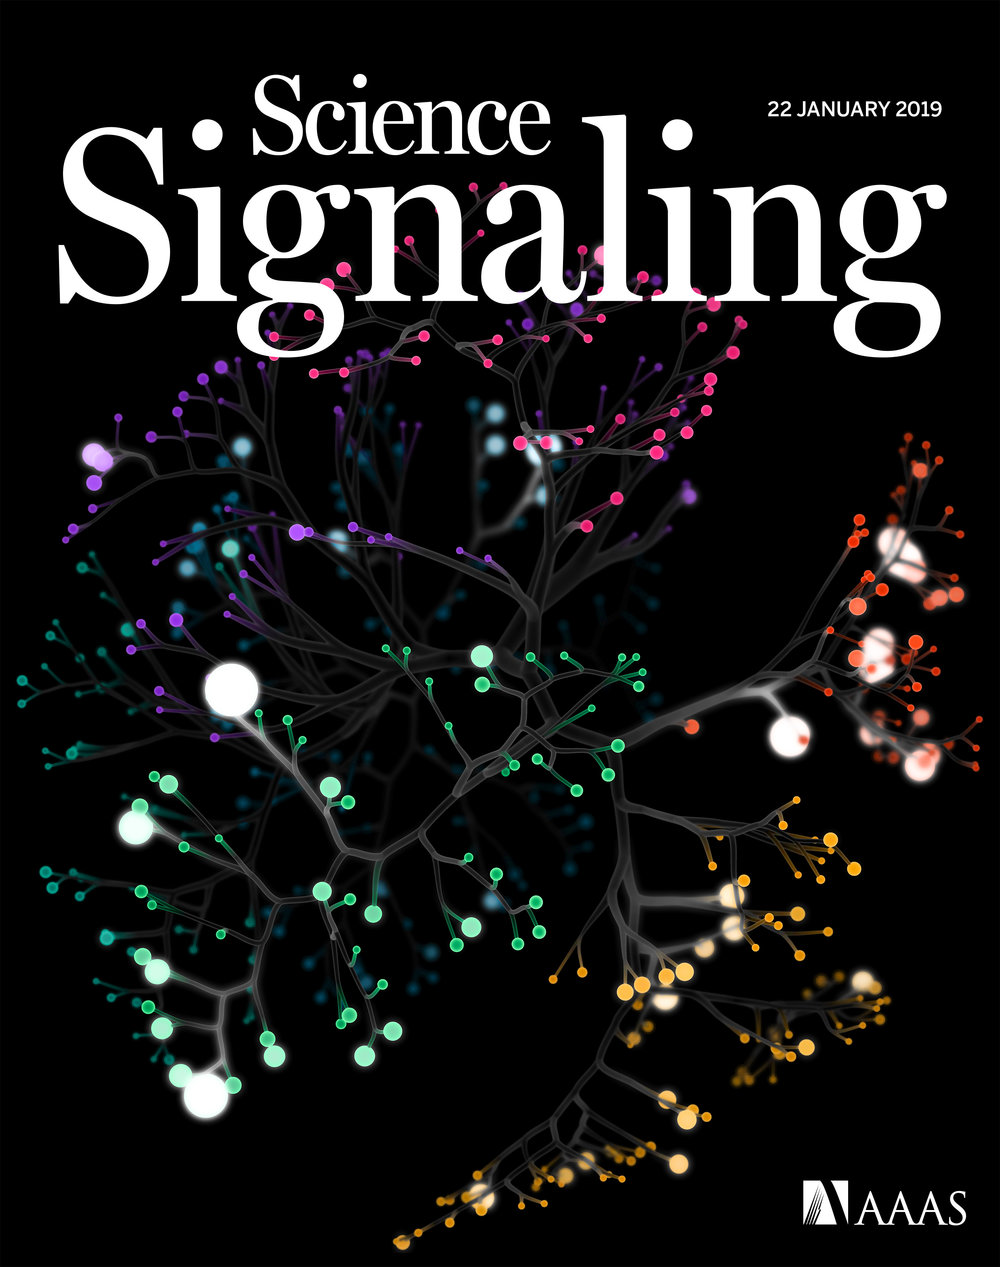 ScienceSignalingCover.jpeg